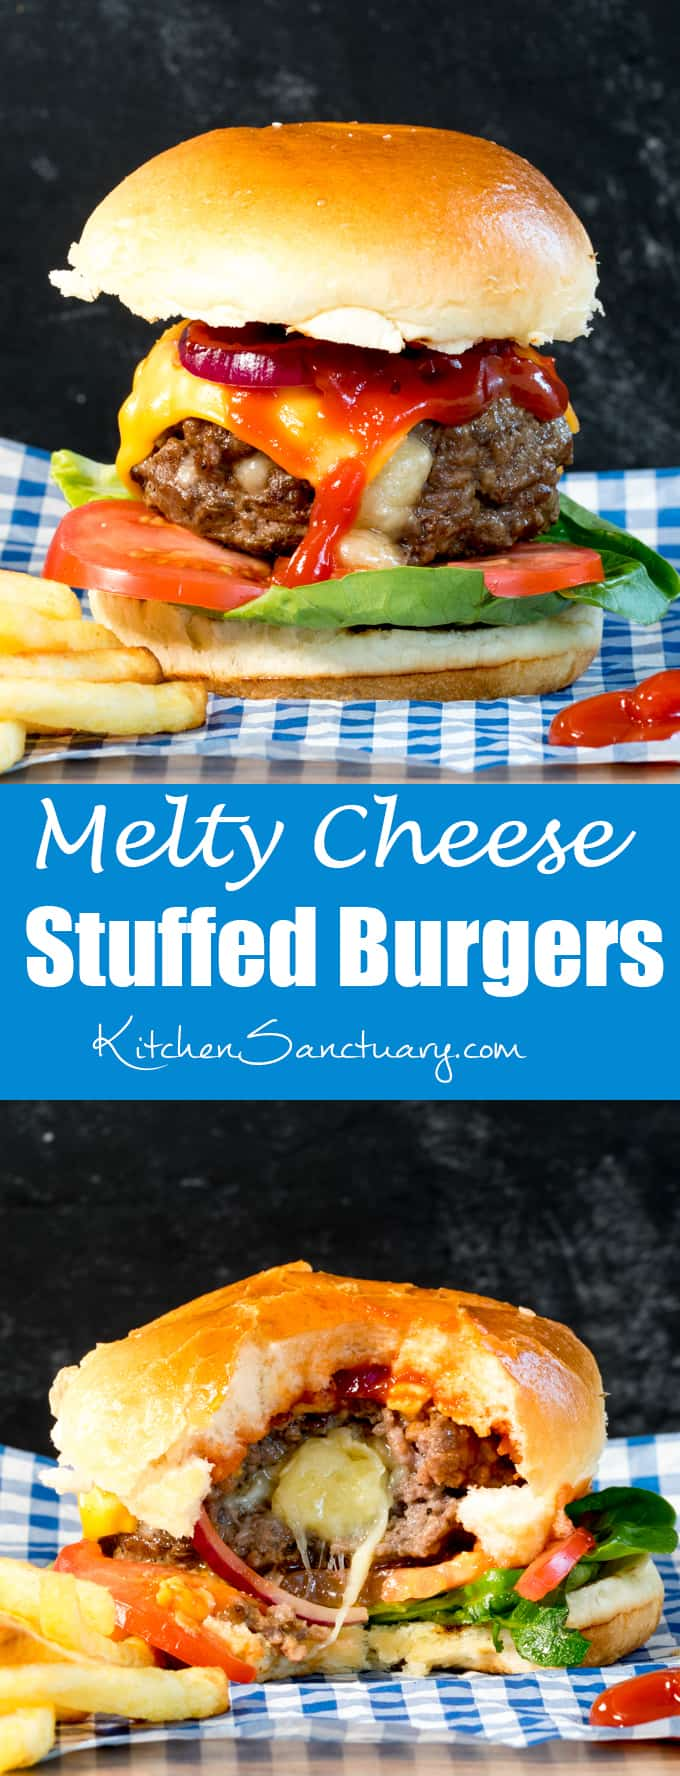 This melty cheese stuffed burger with crunchy lettuce, onion and juicy tomatoes, all sandwiched in a golden toasted brioche bun is way better than any takeout burger!